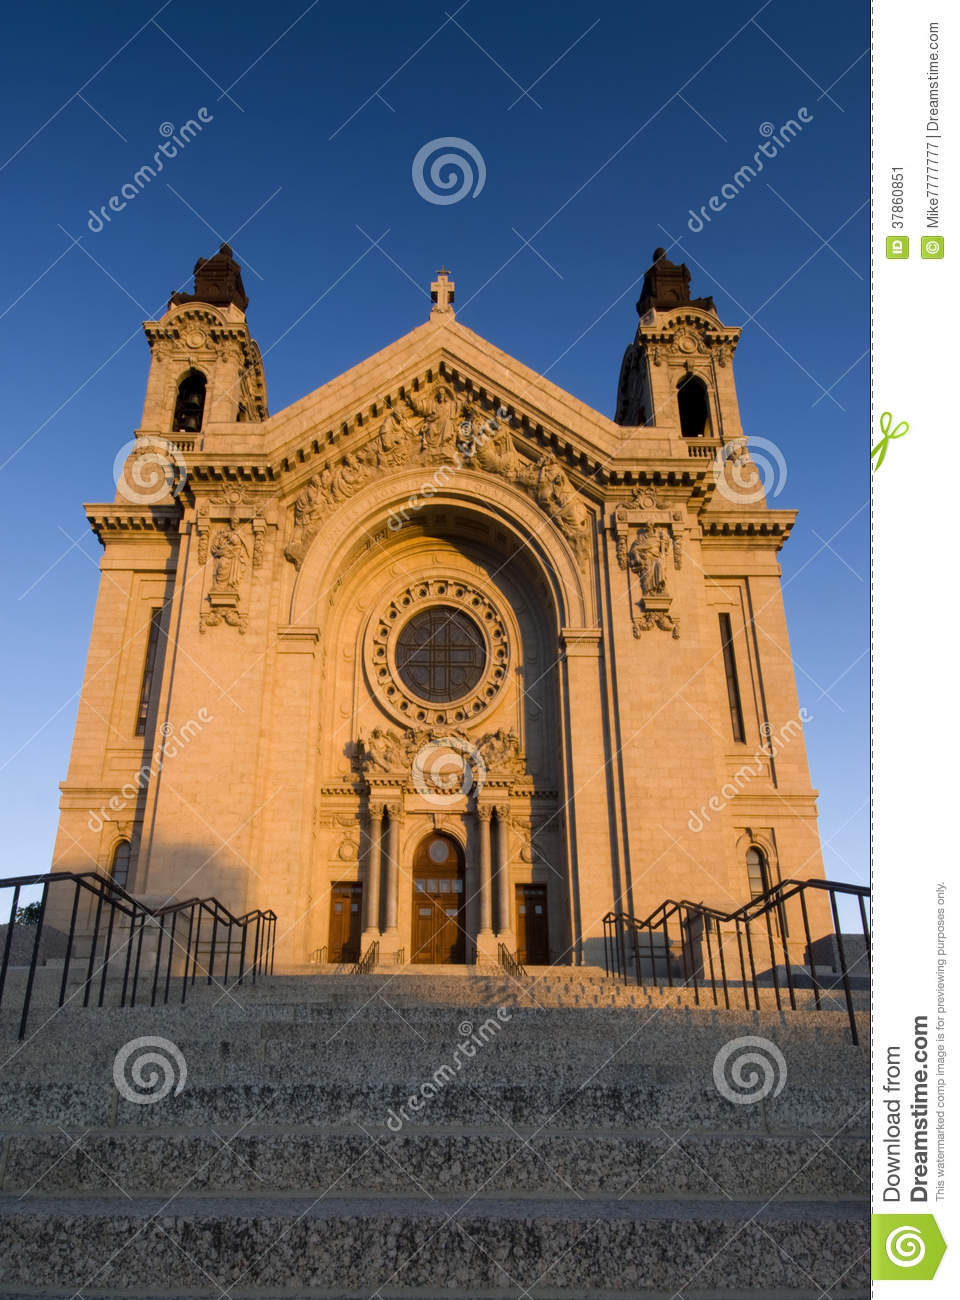 Download Morning Sun On Saint Paul's Cathedral. Saint Paul, Minnesota, USA Stock Image - Image of stone, carving: 37860851